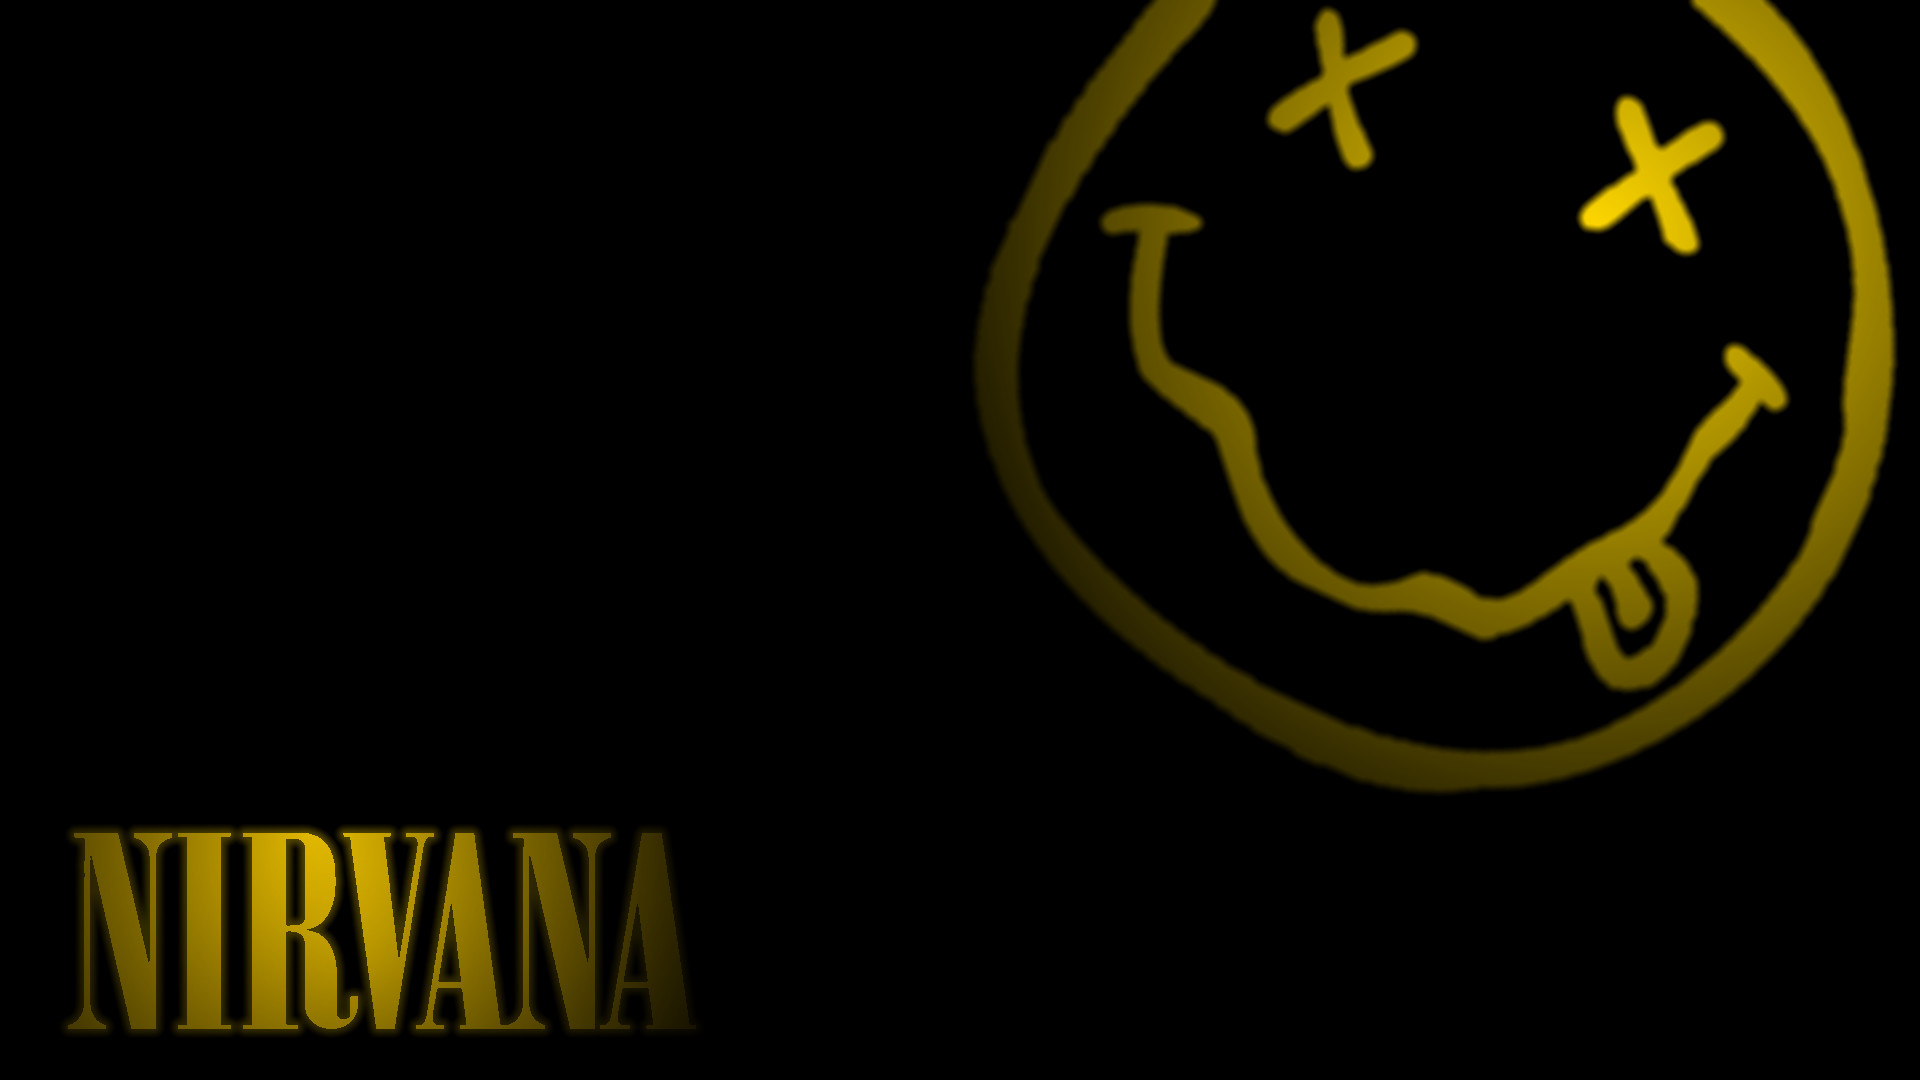 1920x1080 Nirvana Wallpapers - Wallpaper Cave